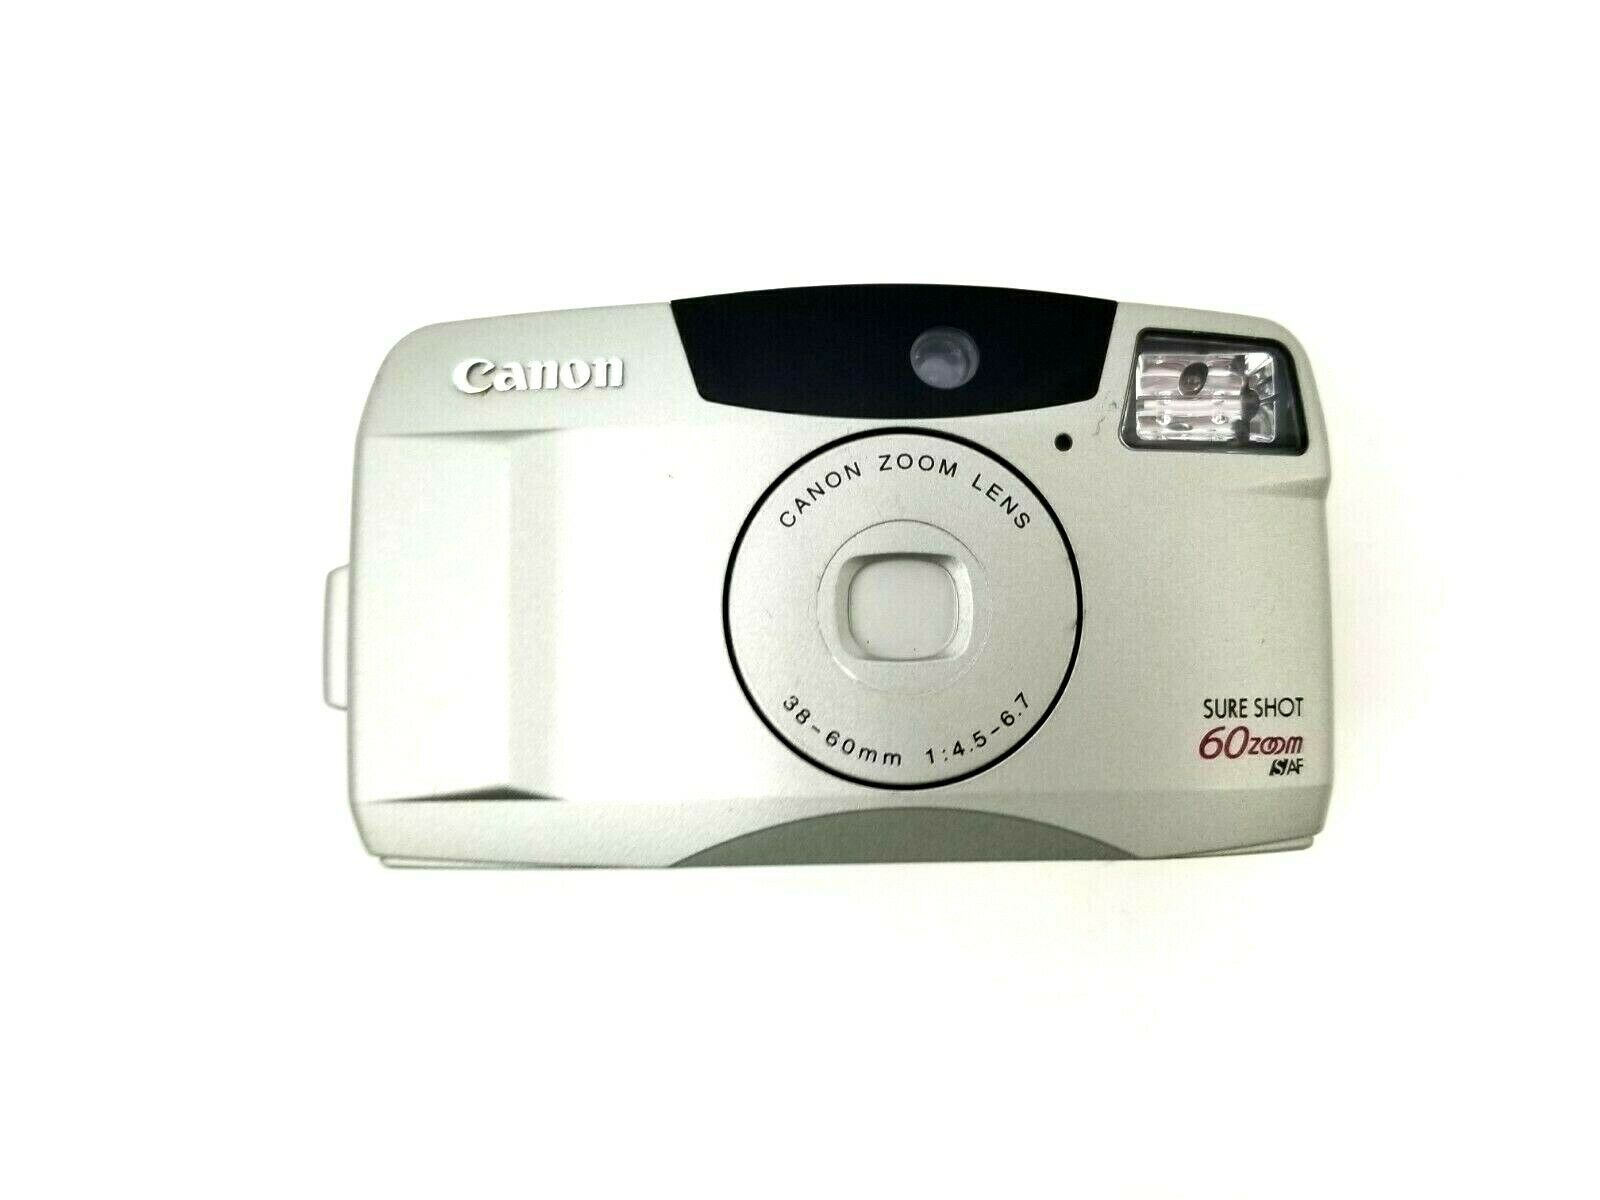 Canon Sure Shot 60 Zoom SAF 35mm Film Camera w/Canon Zoom Lens 38-60mm